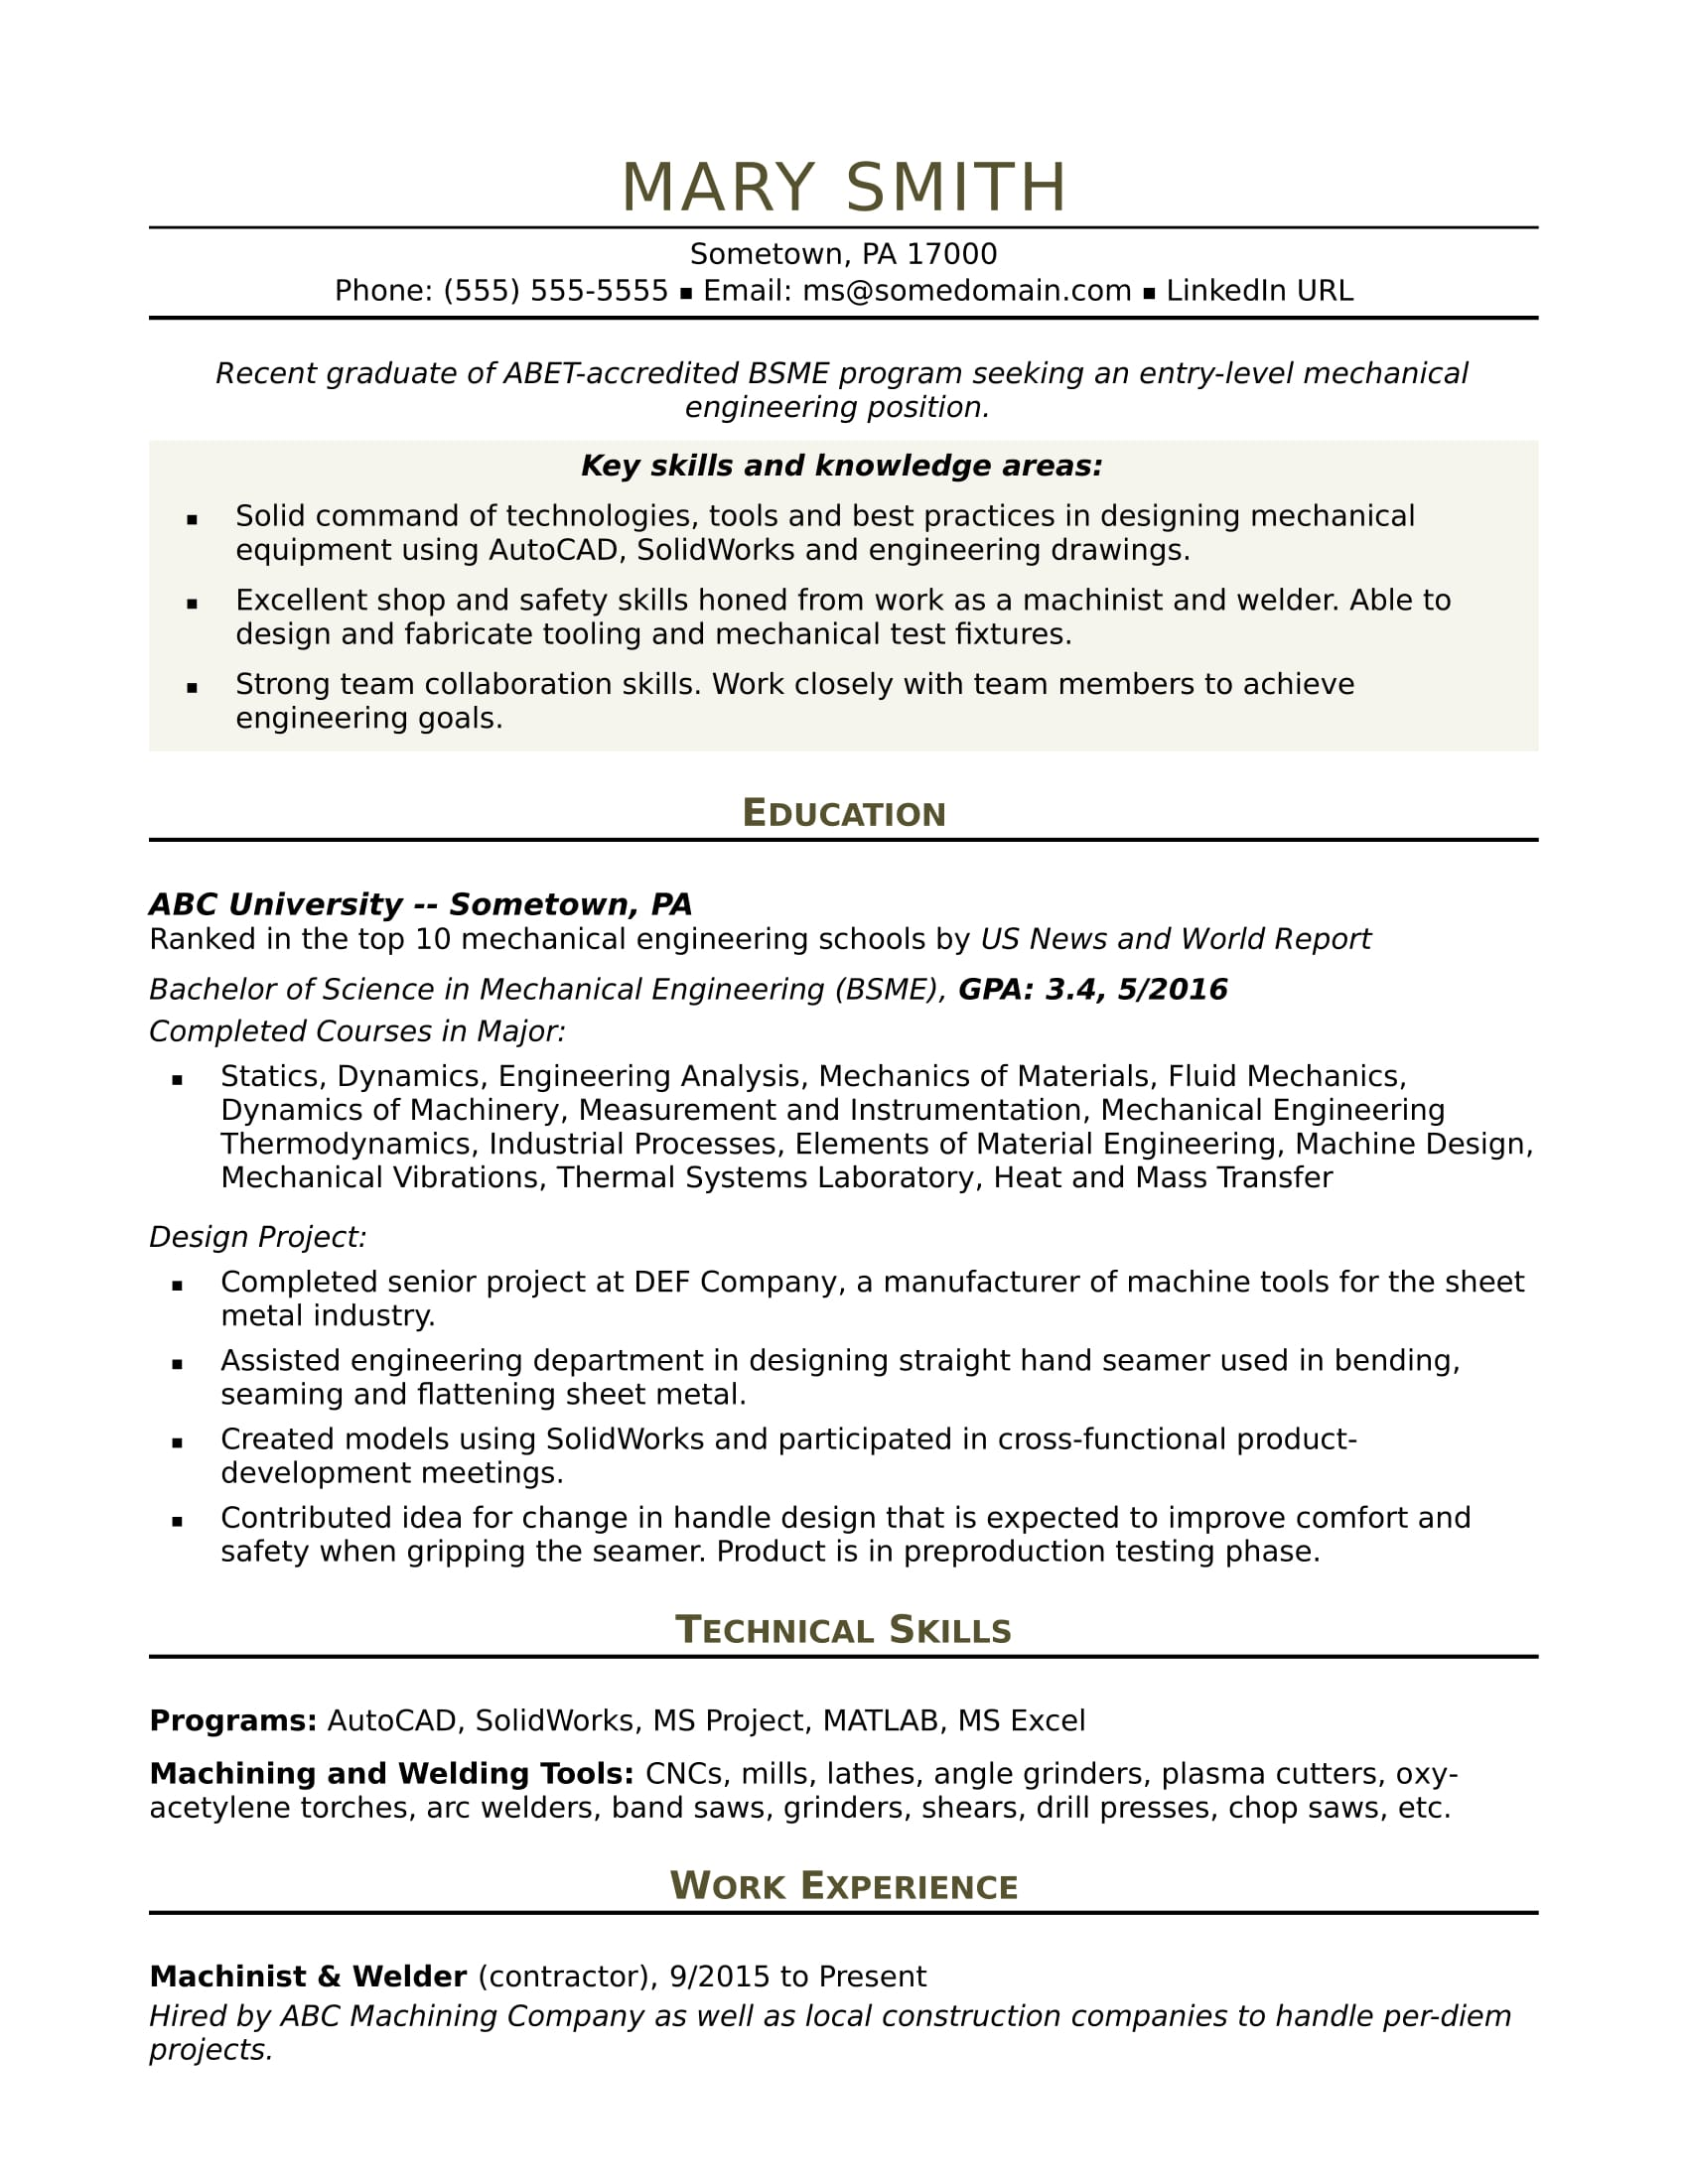 Solidworks Resume Zanka Opencertificates Co